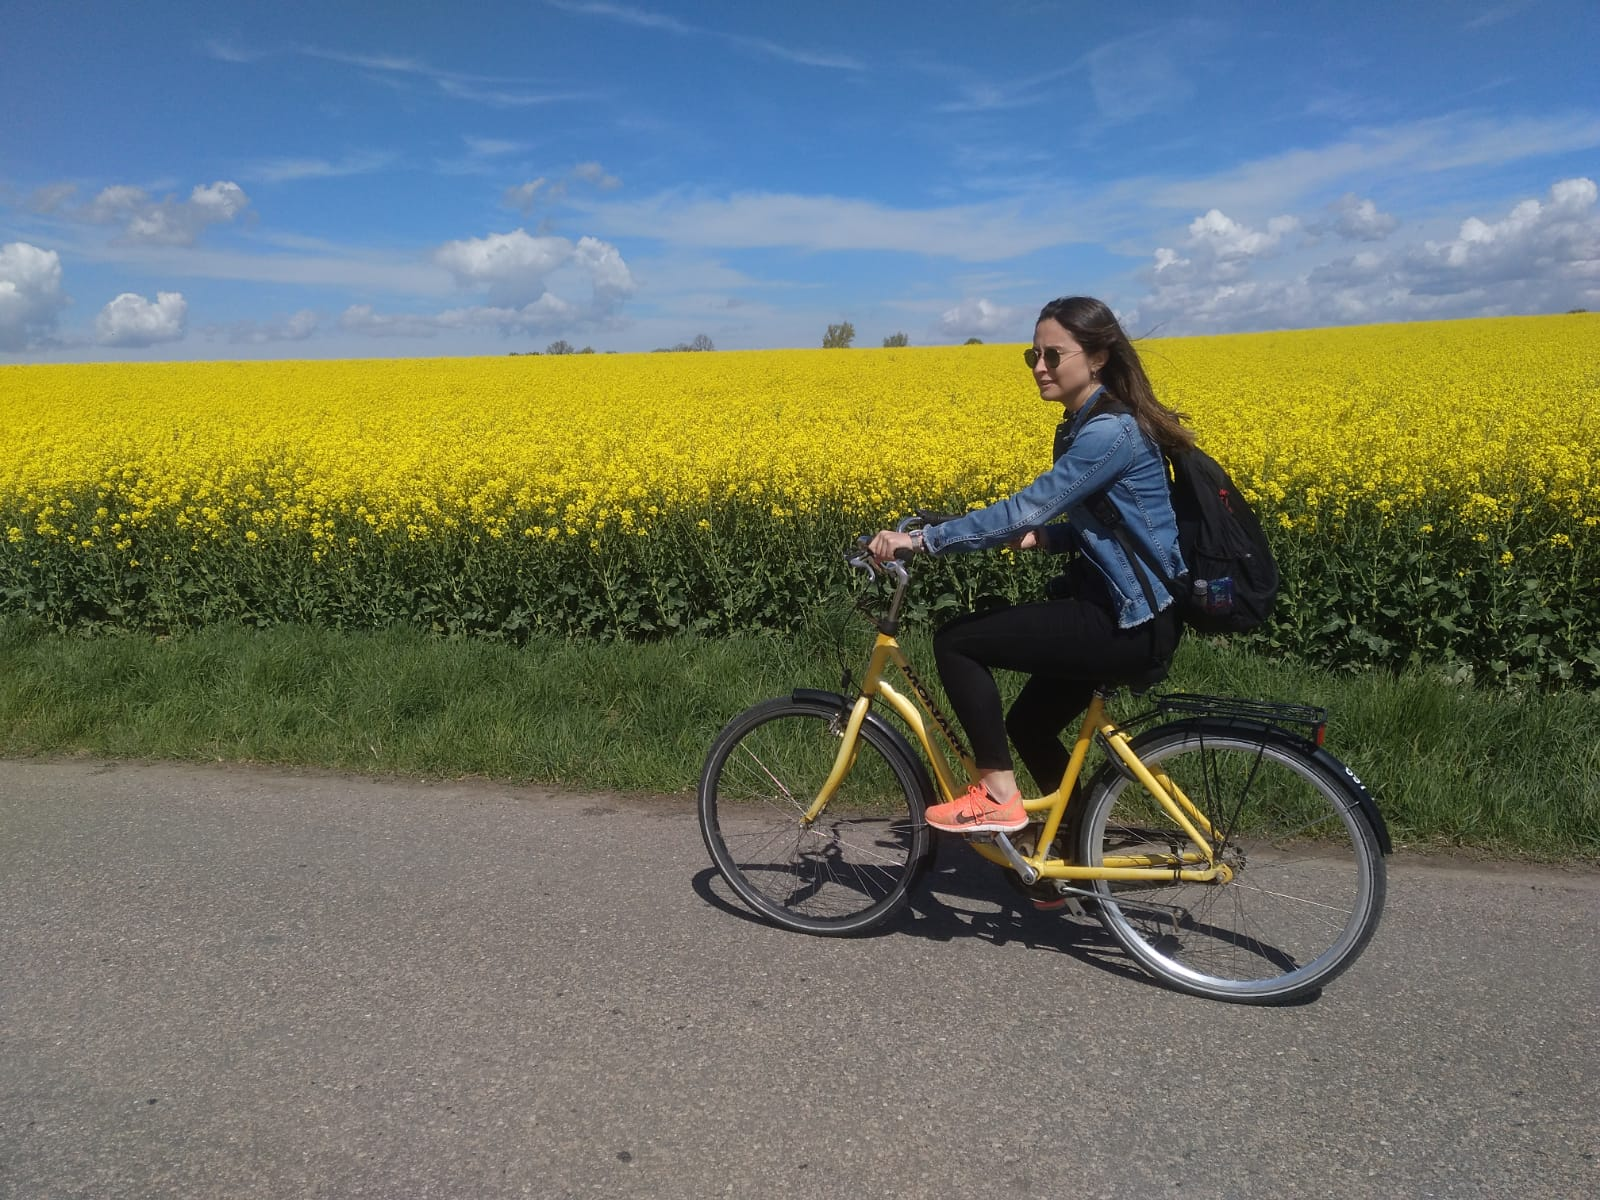 Chiara Nava riding bike in fields